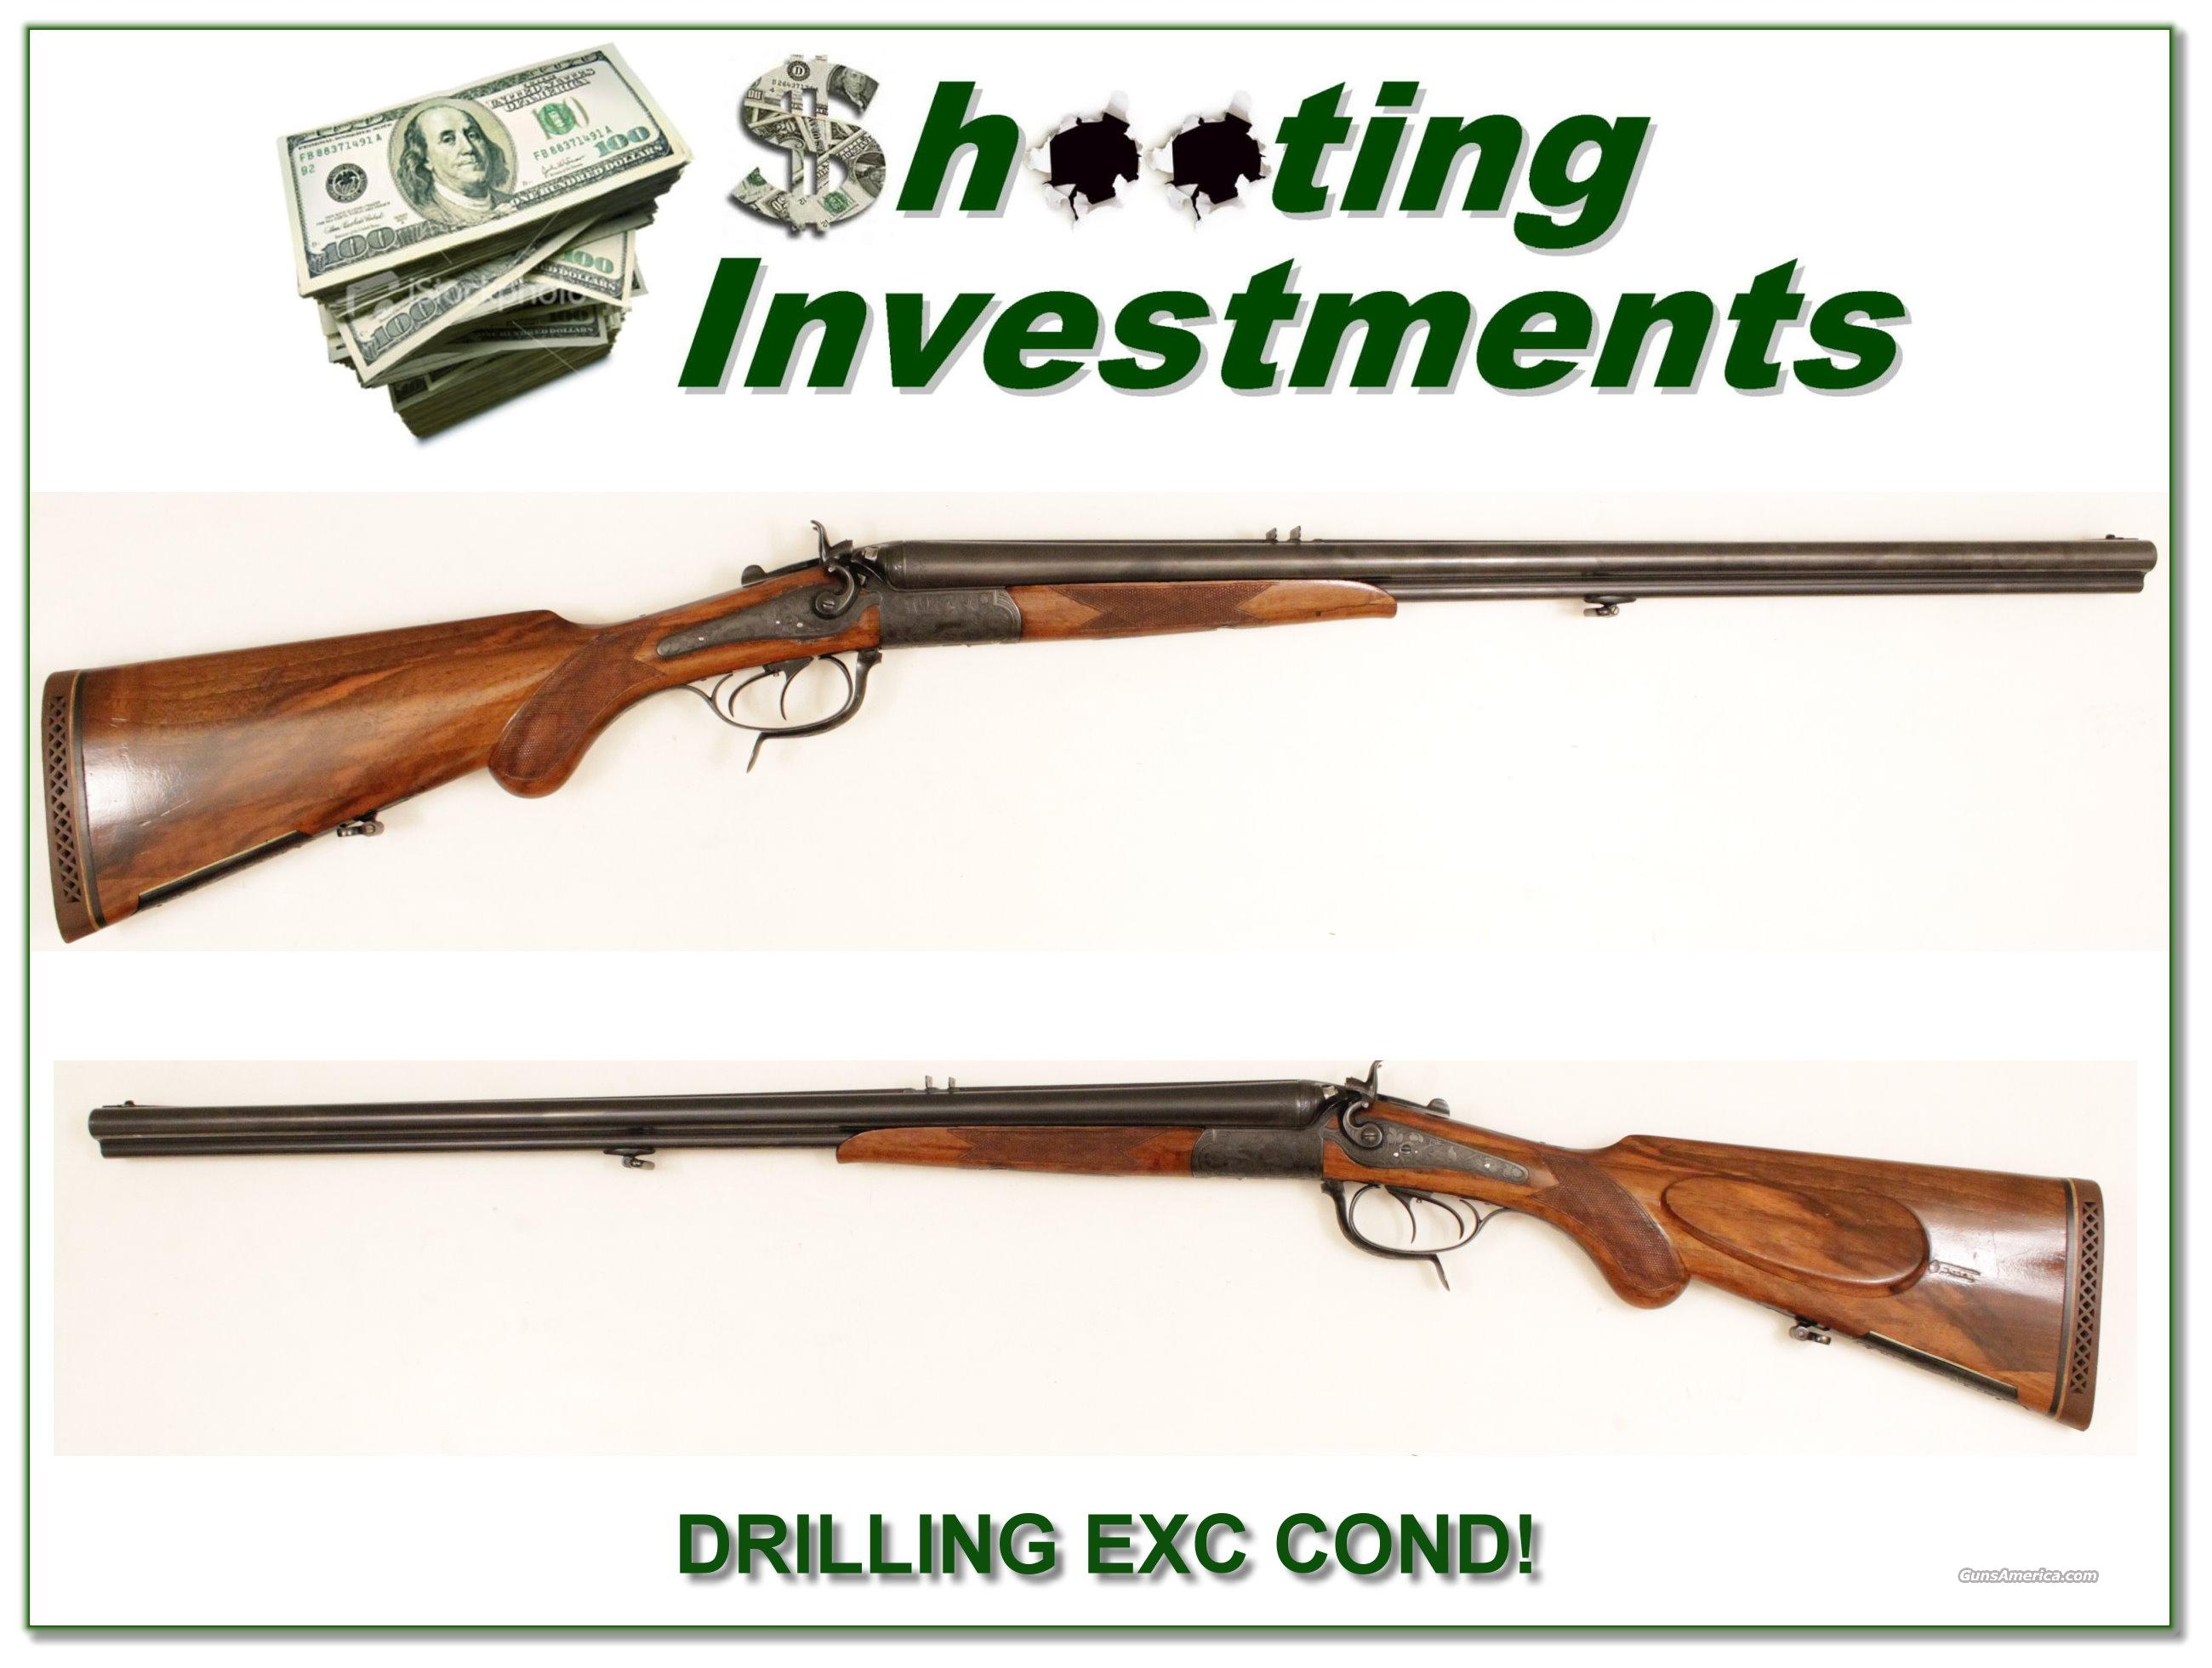 H Stricker Drilling 16 x 16 x 9.3x72  Krupp barrel  Guns > Shotguns > Drilling & Combo Shotgun Rifle Combos